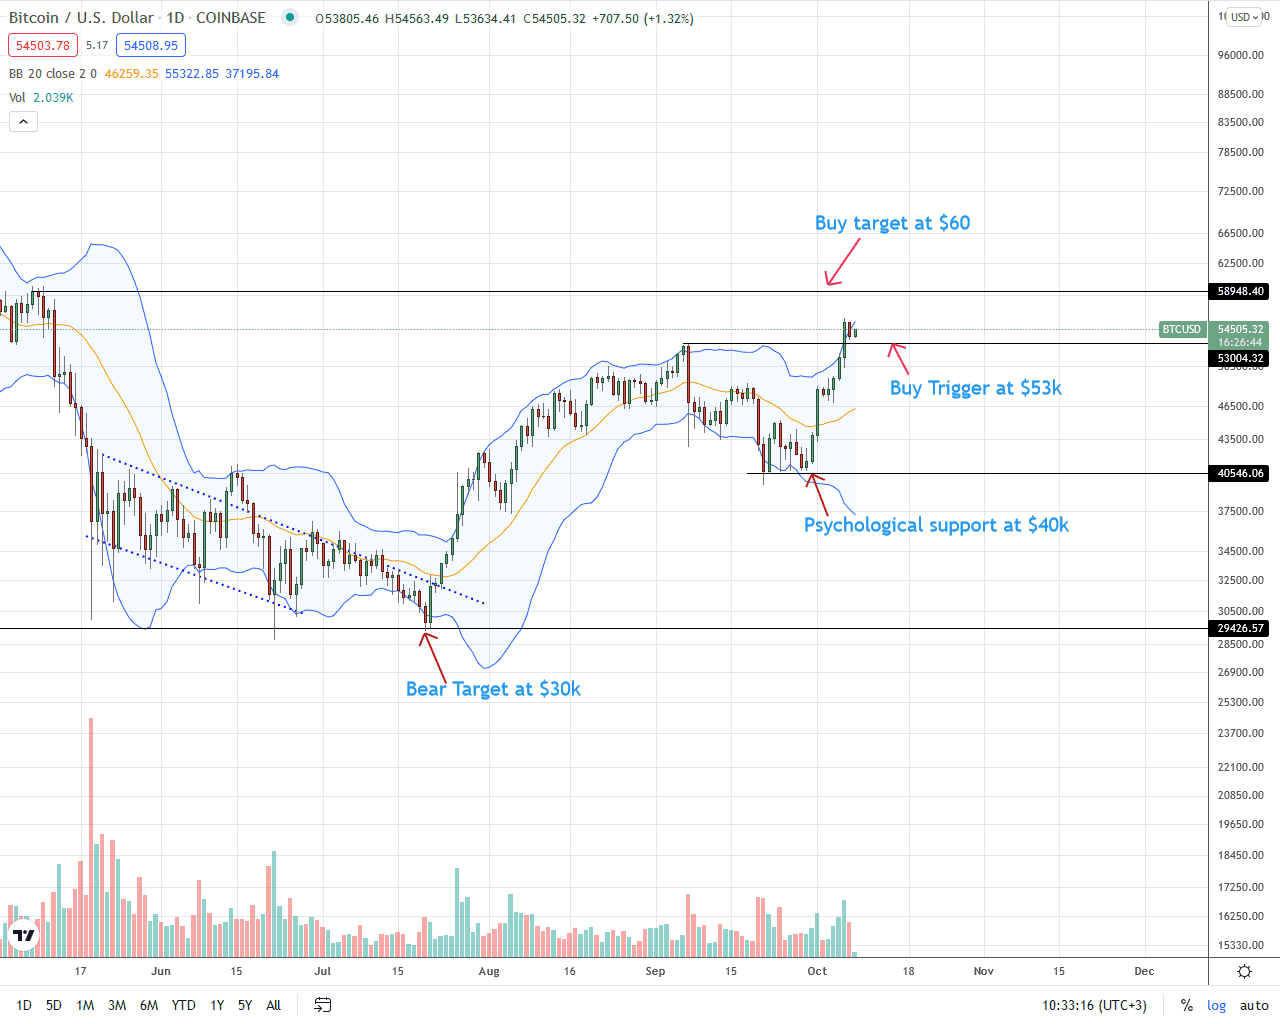 Bitcoin Daily Price Chart for October 8